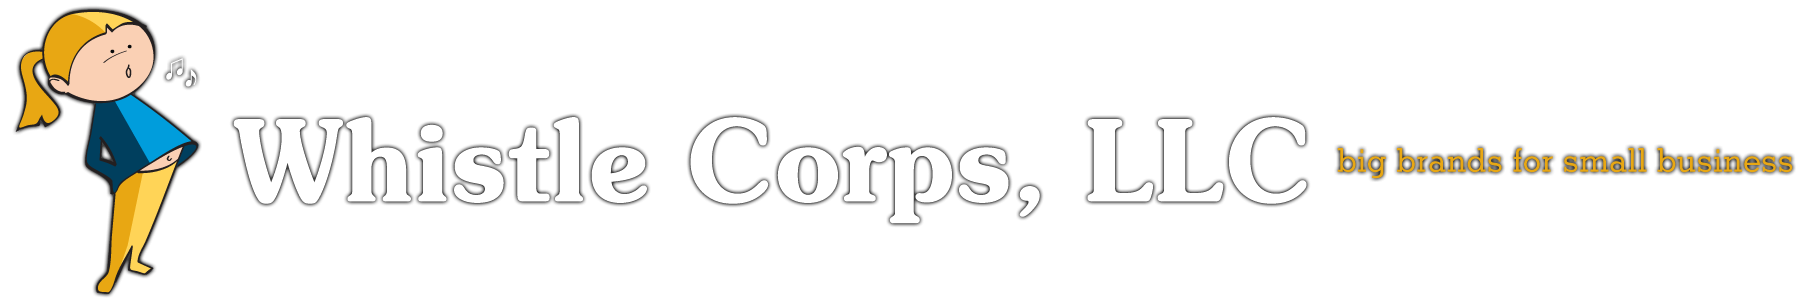 Whistle Corps LLC